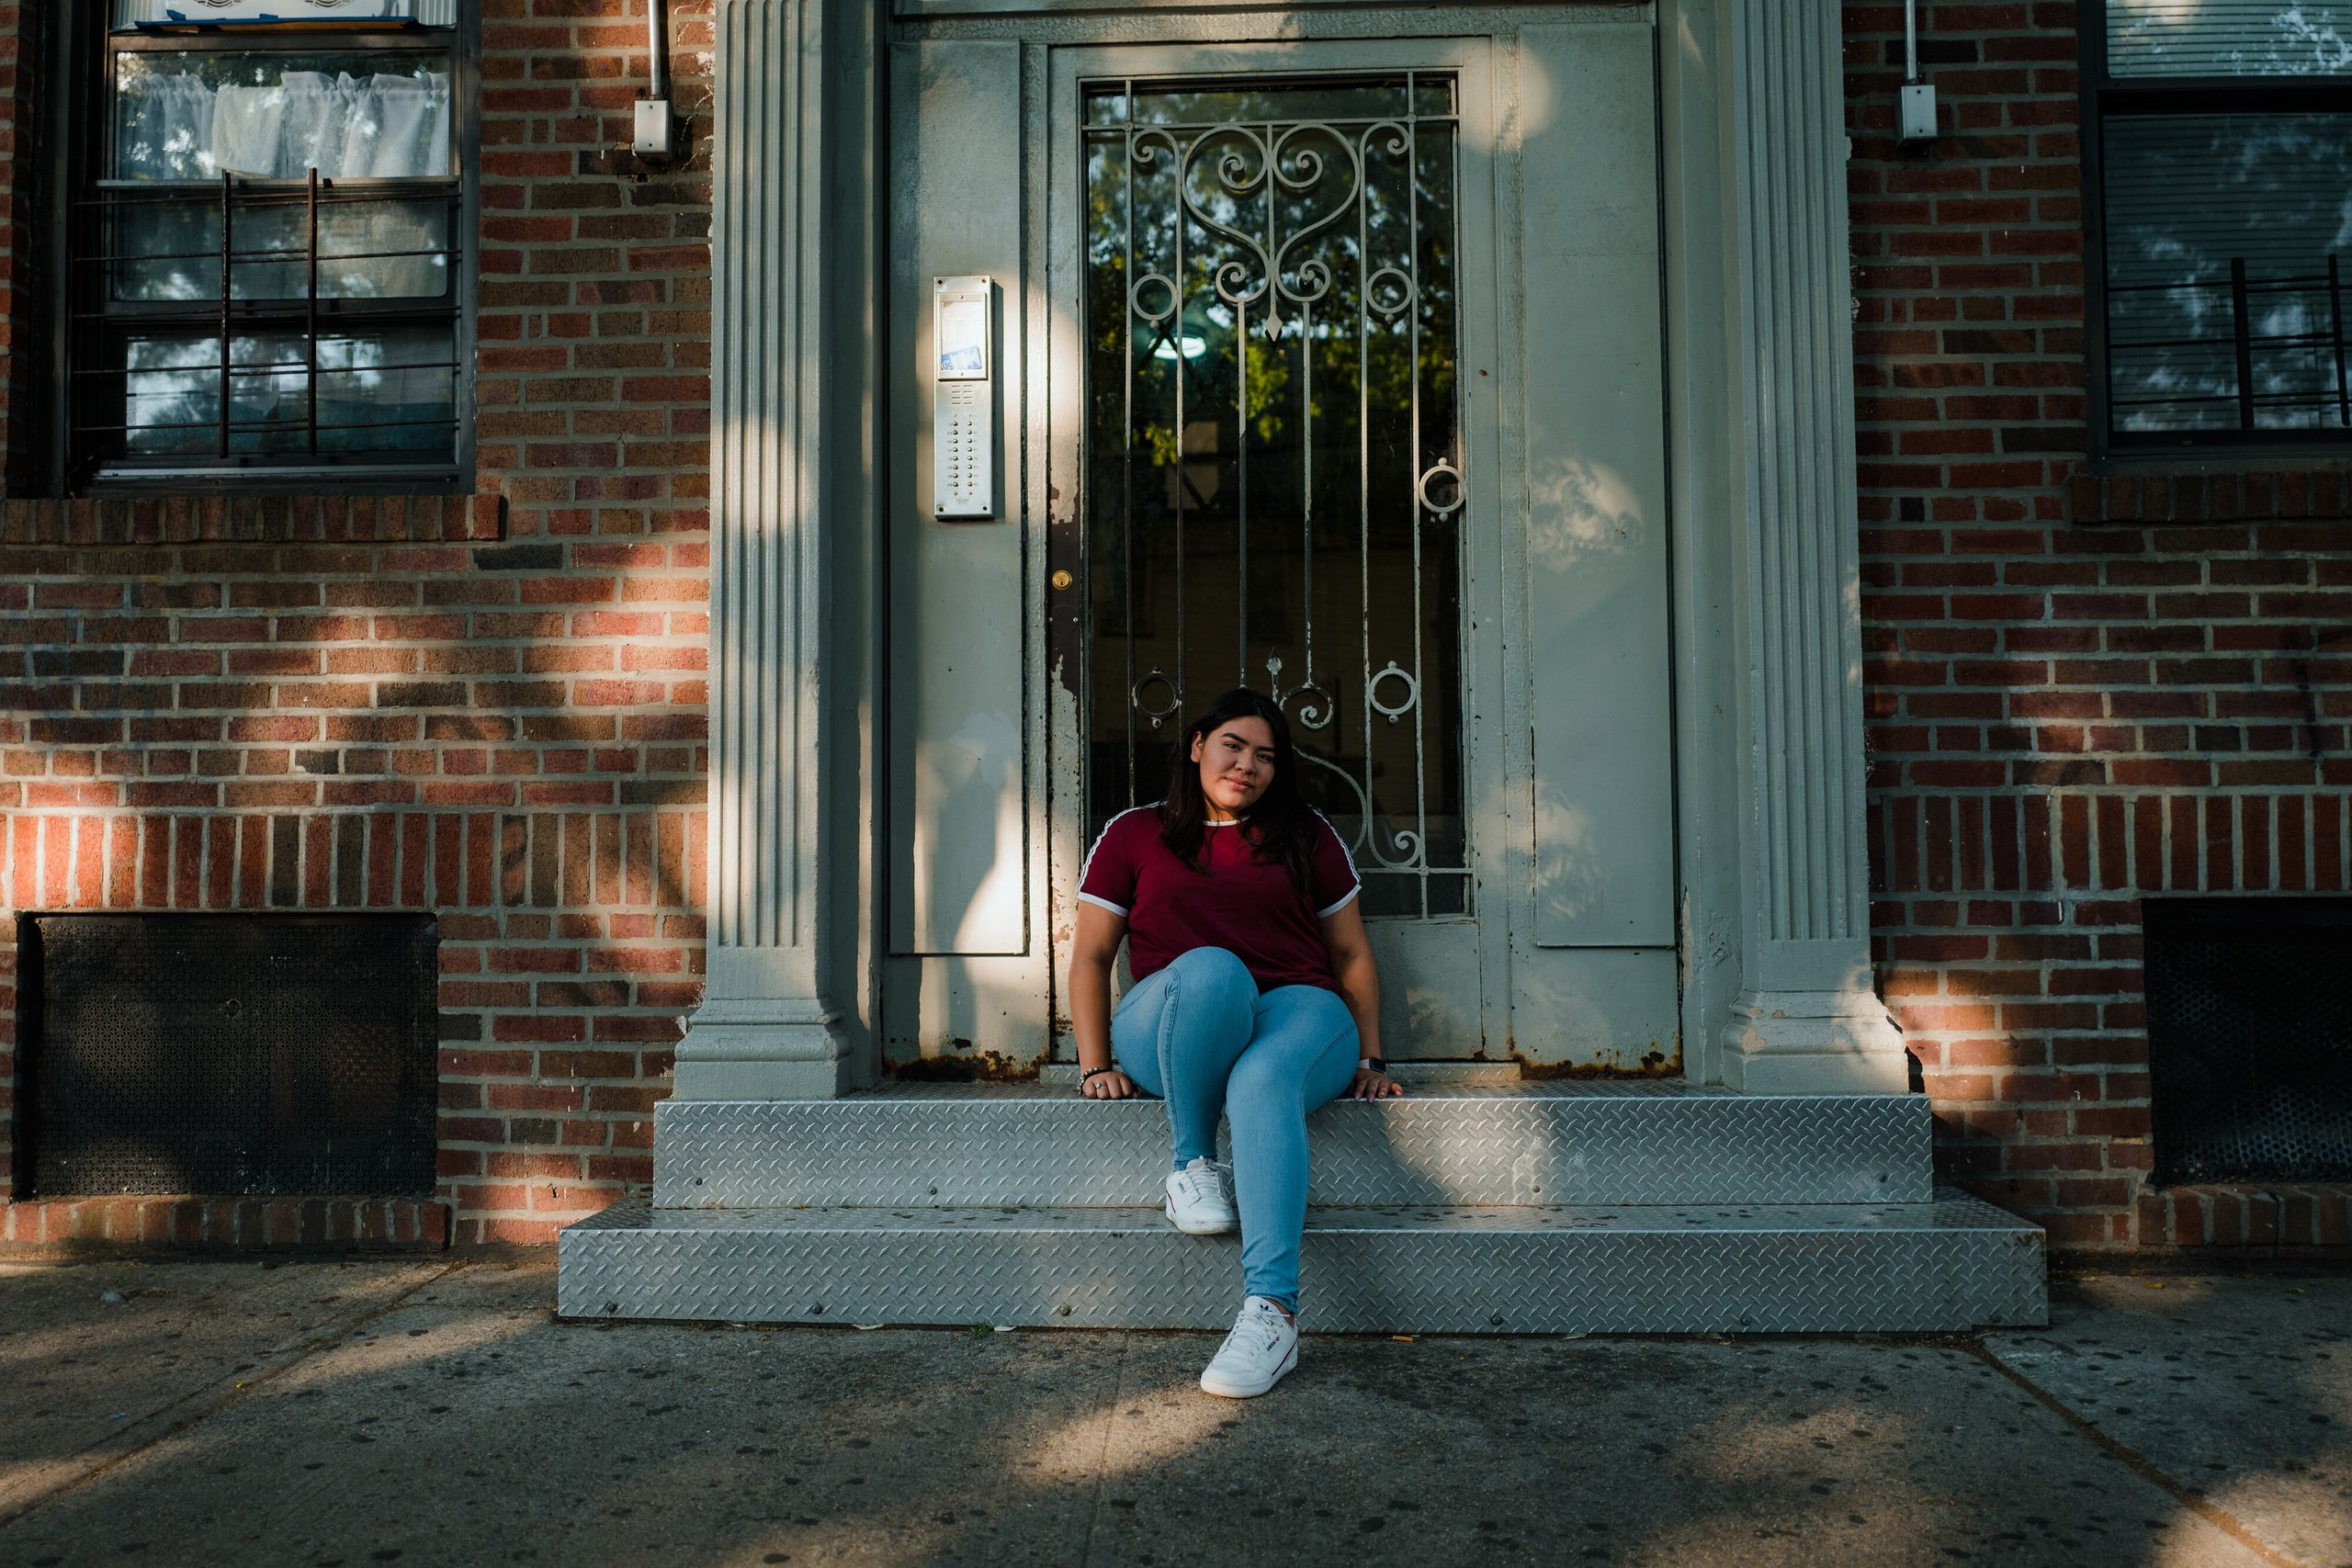 Garate near her home. New York City — and her neighborhood in particular — has been hit particularly hard during